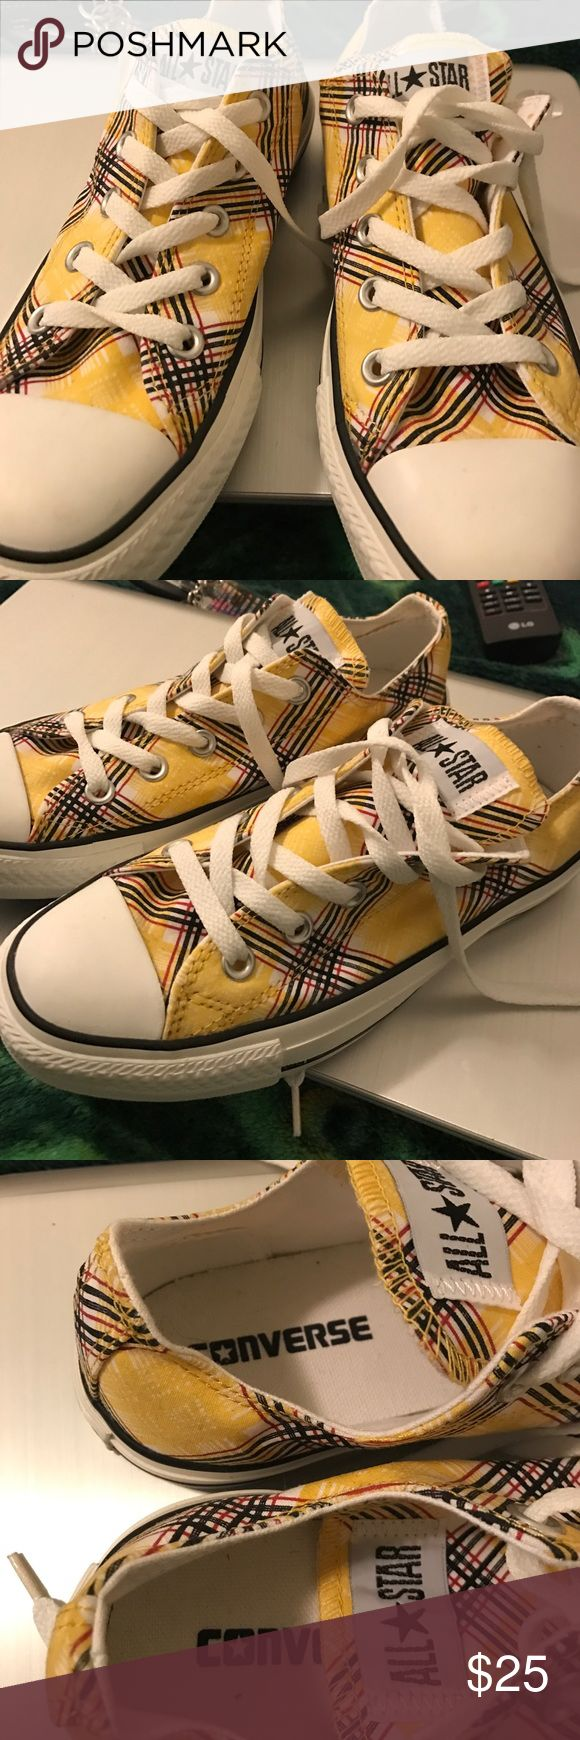 Yellow Stripped Converse Classic ChuckTaylor Brand New, Never Worn Yellow Stripped Classic Chuck Taylor, Very Comfortable, Shoe Size says it is 6 but it runs Big, I am a 6.5 and it still fits me a little big, if you are a shoe size 6.5 I think you should be fine, no Tags, but you can see the bottom is clean, never used .... Converse Shoes Sneakers